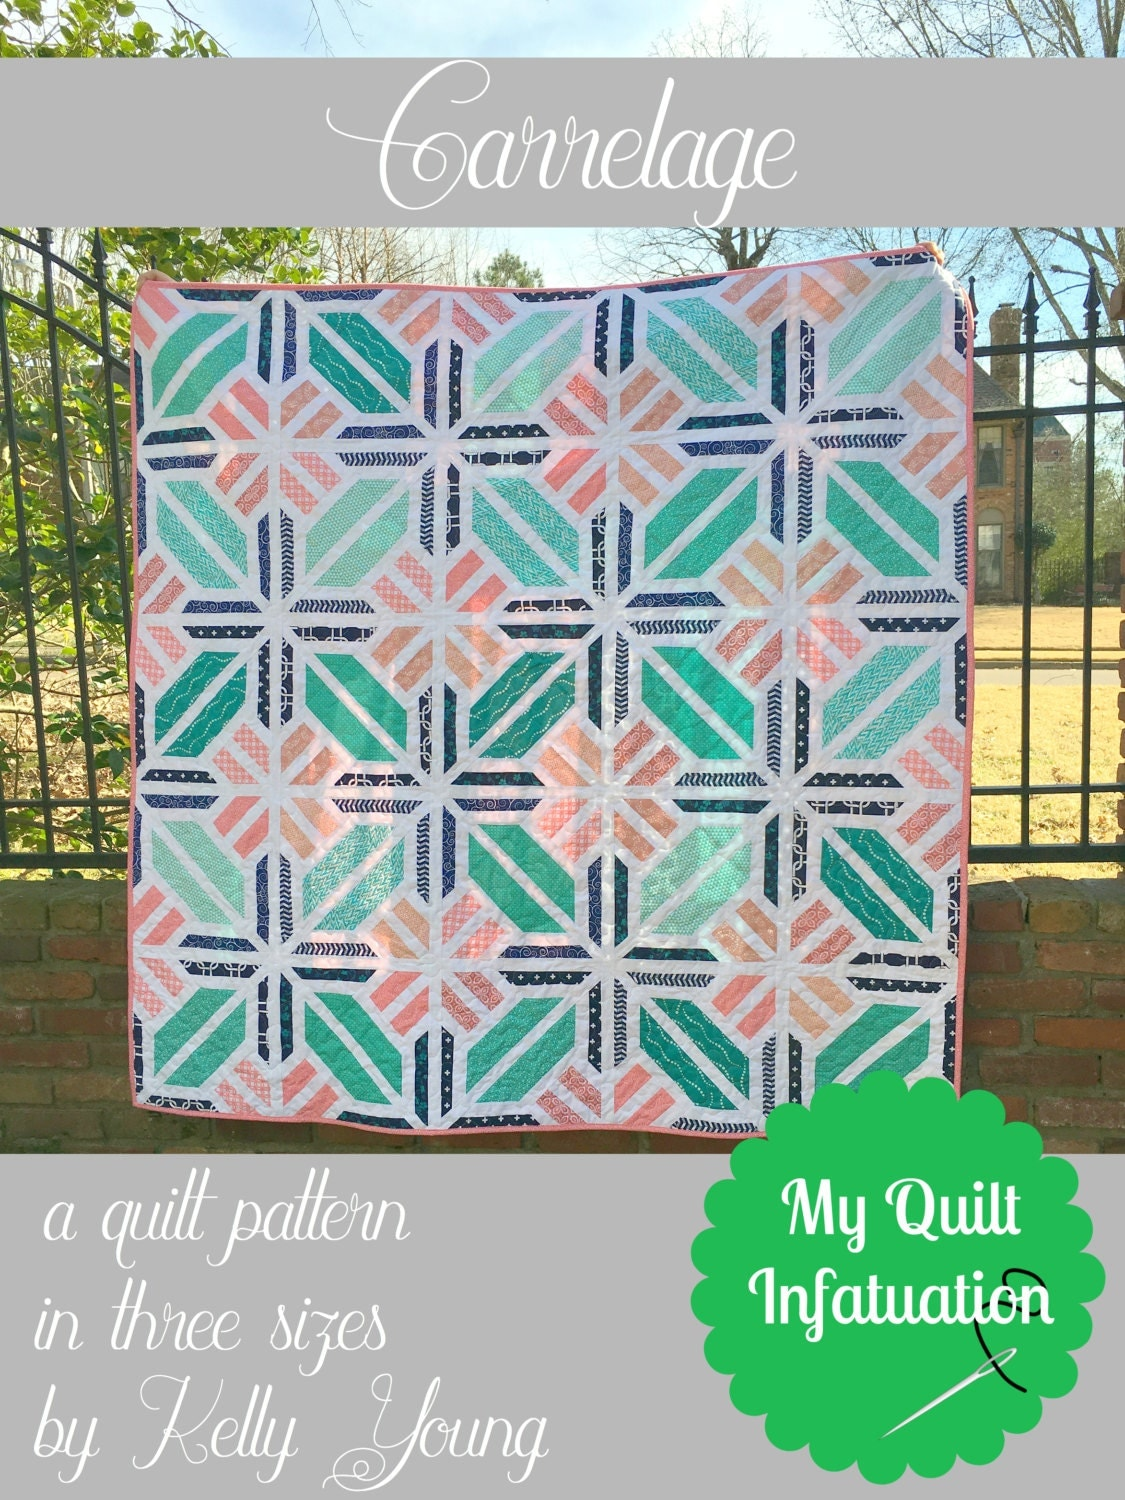 Carrelage quilt pattern from myquiltinfatuation on etsy studio for Carrelage in english